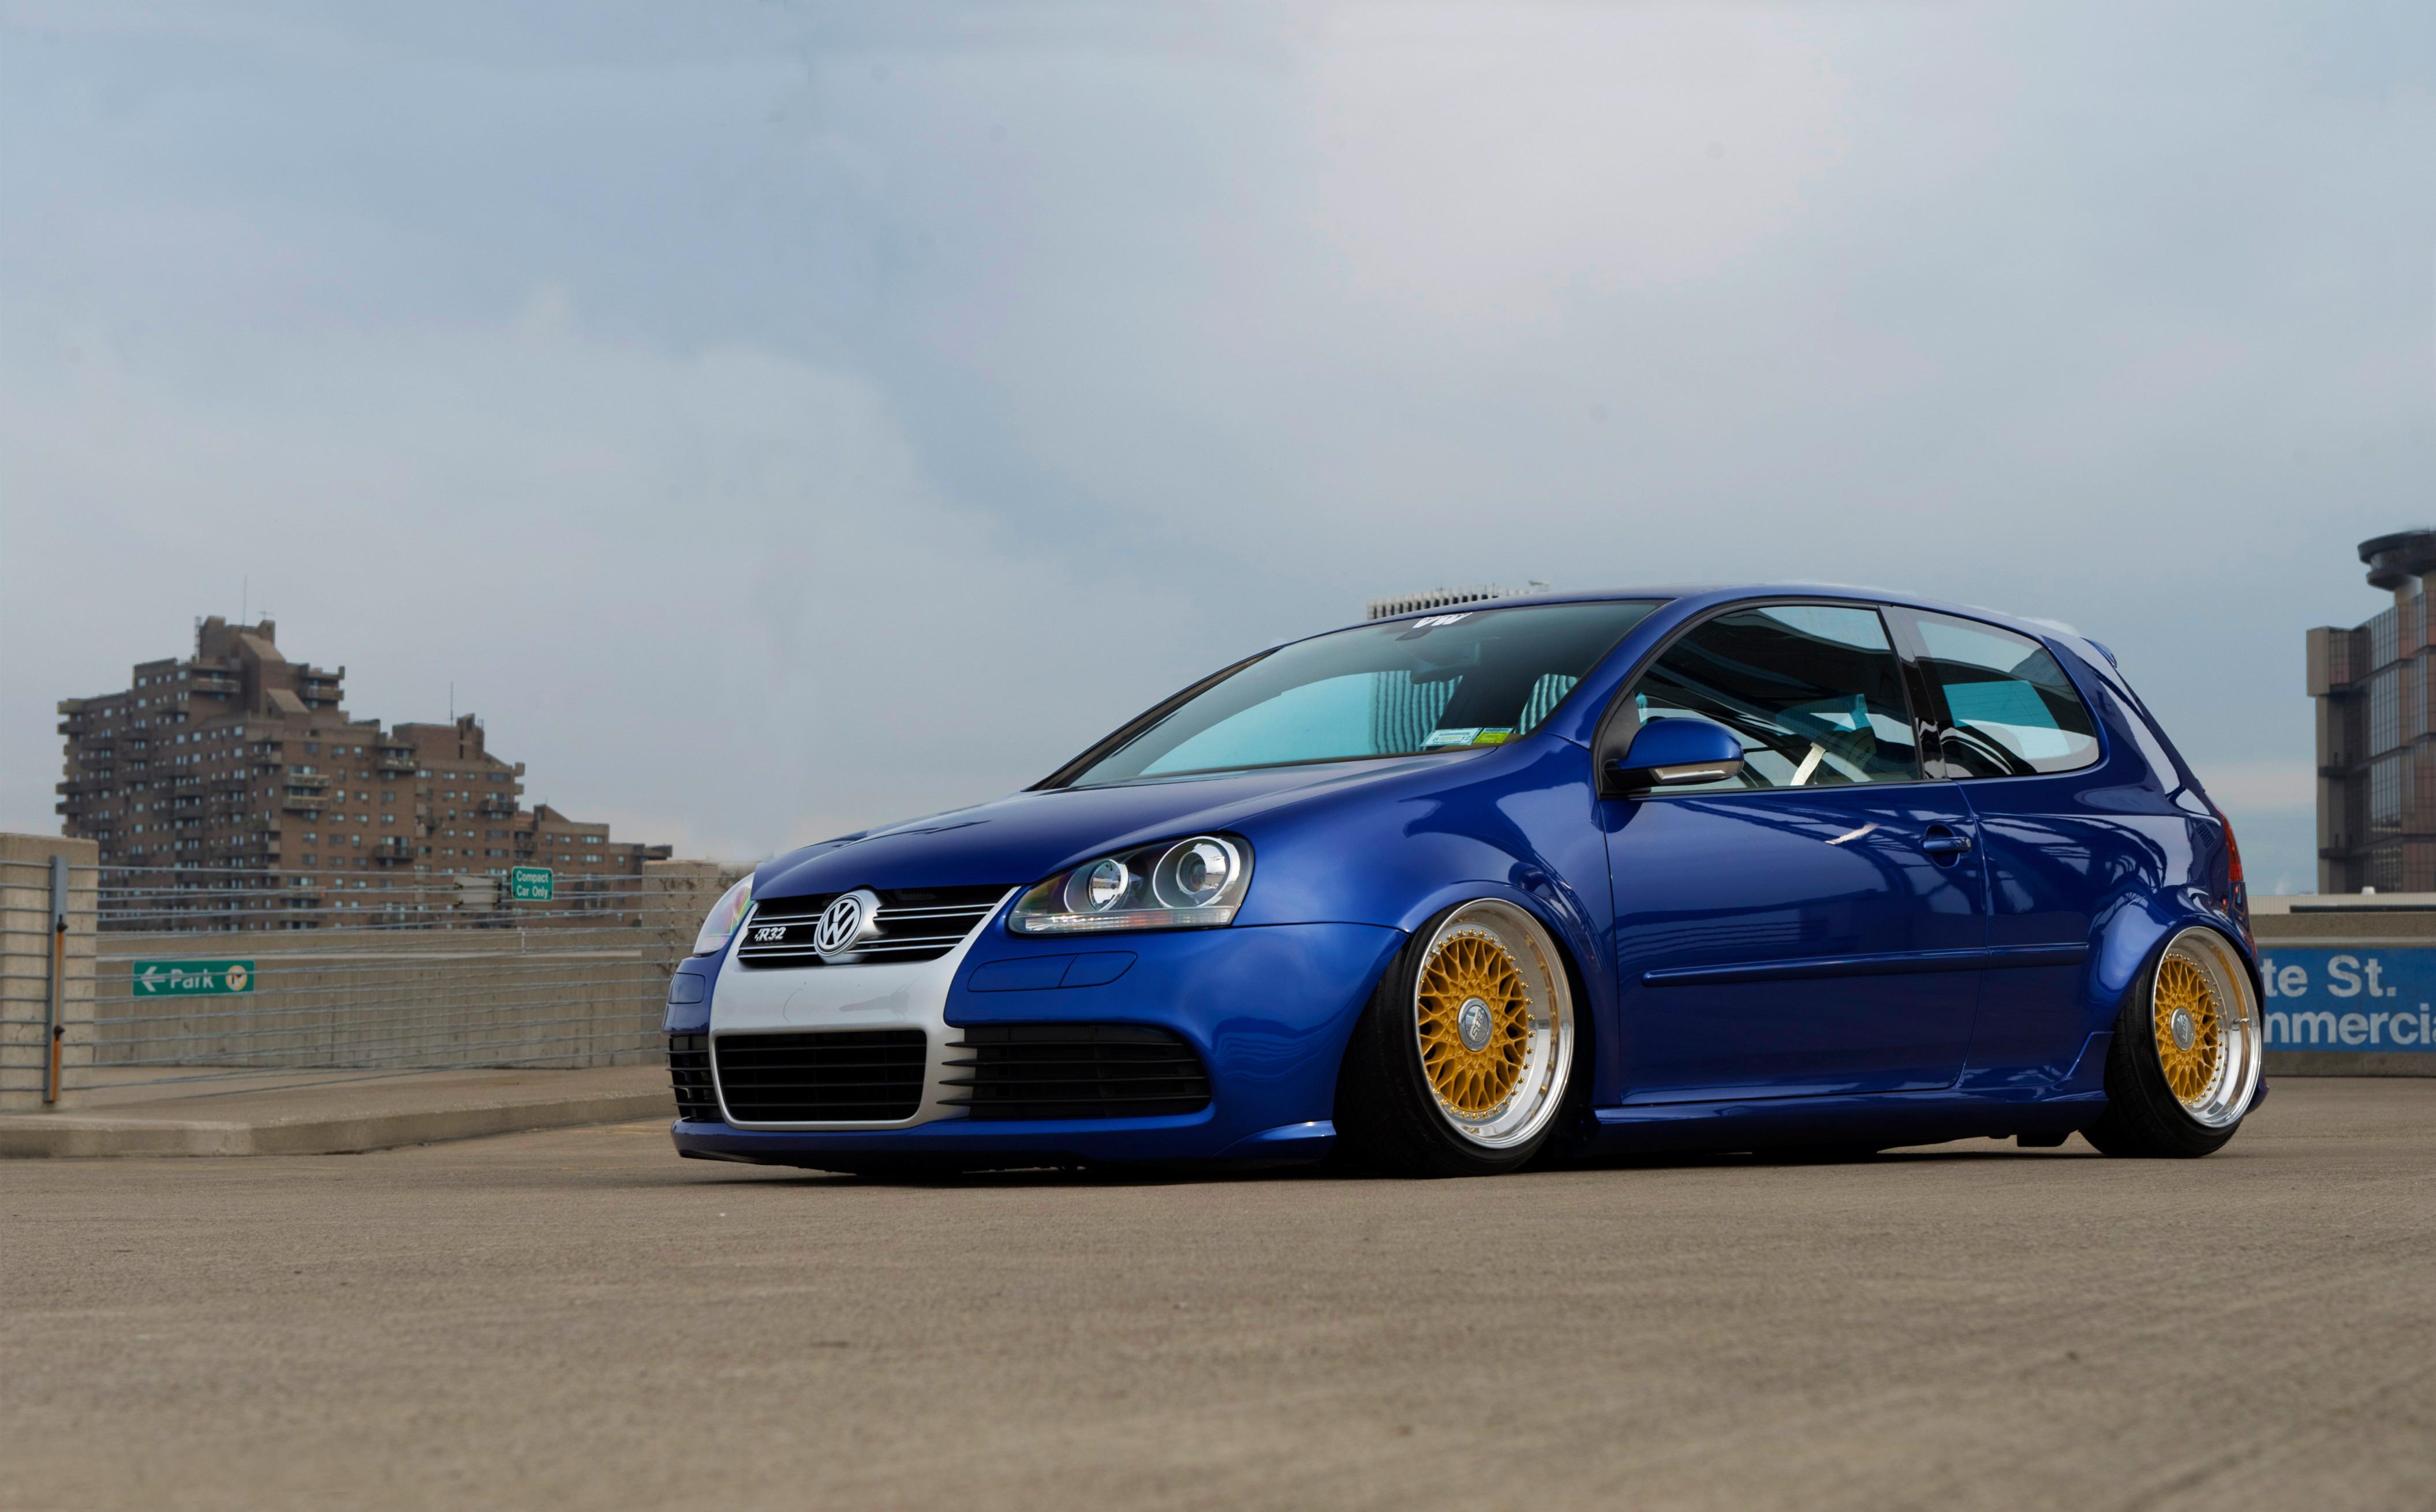 File Name High resolution desktop wallpaper of Golf R32 photo of 4220x2620